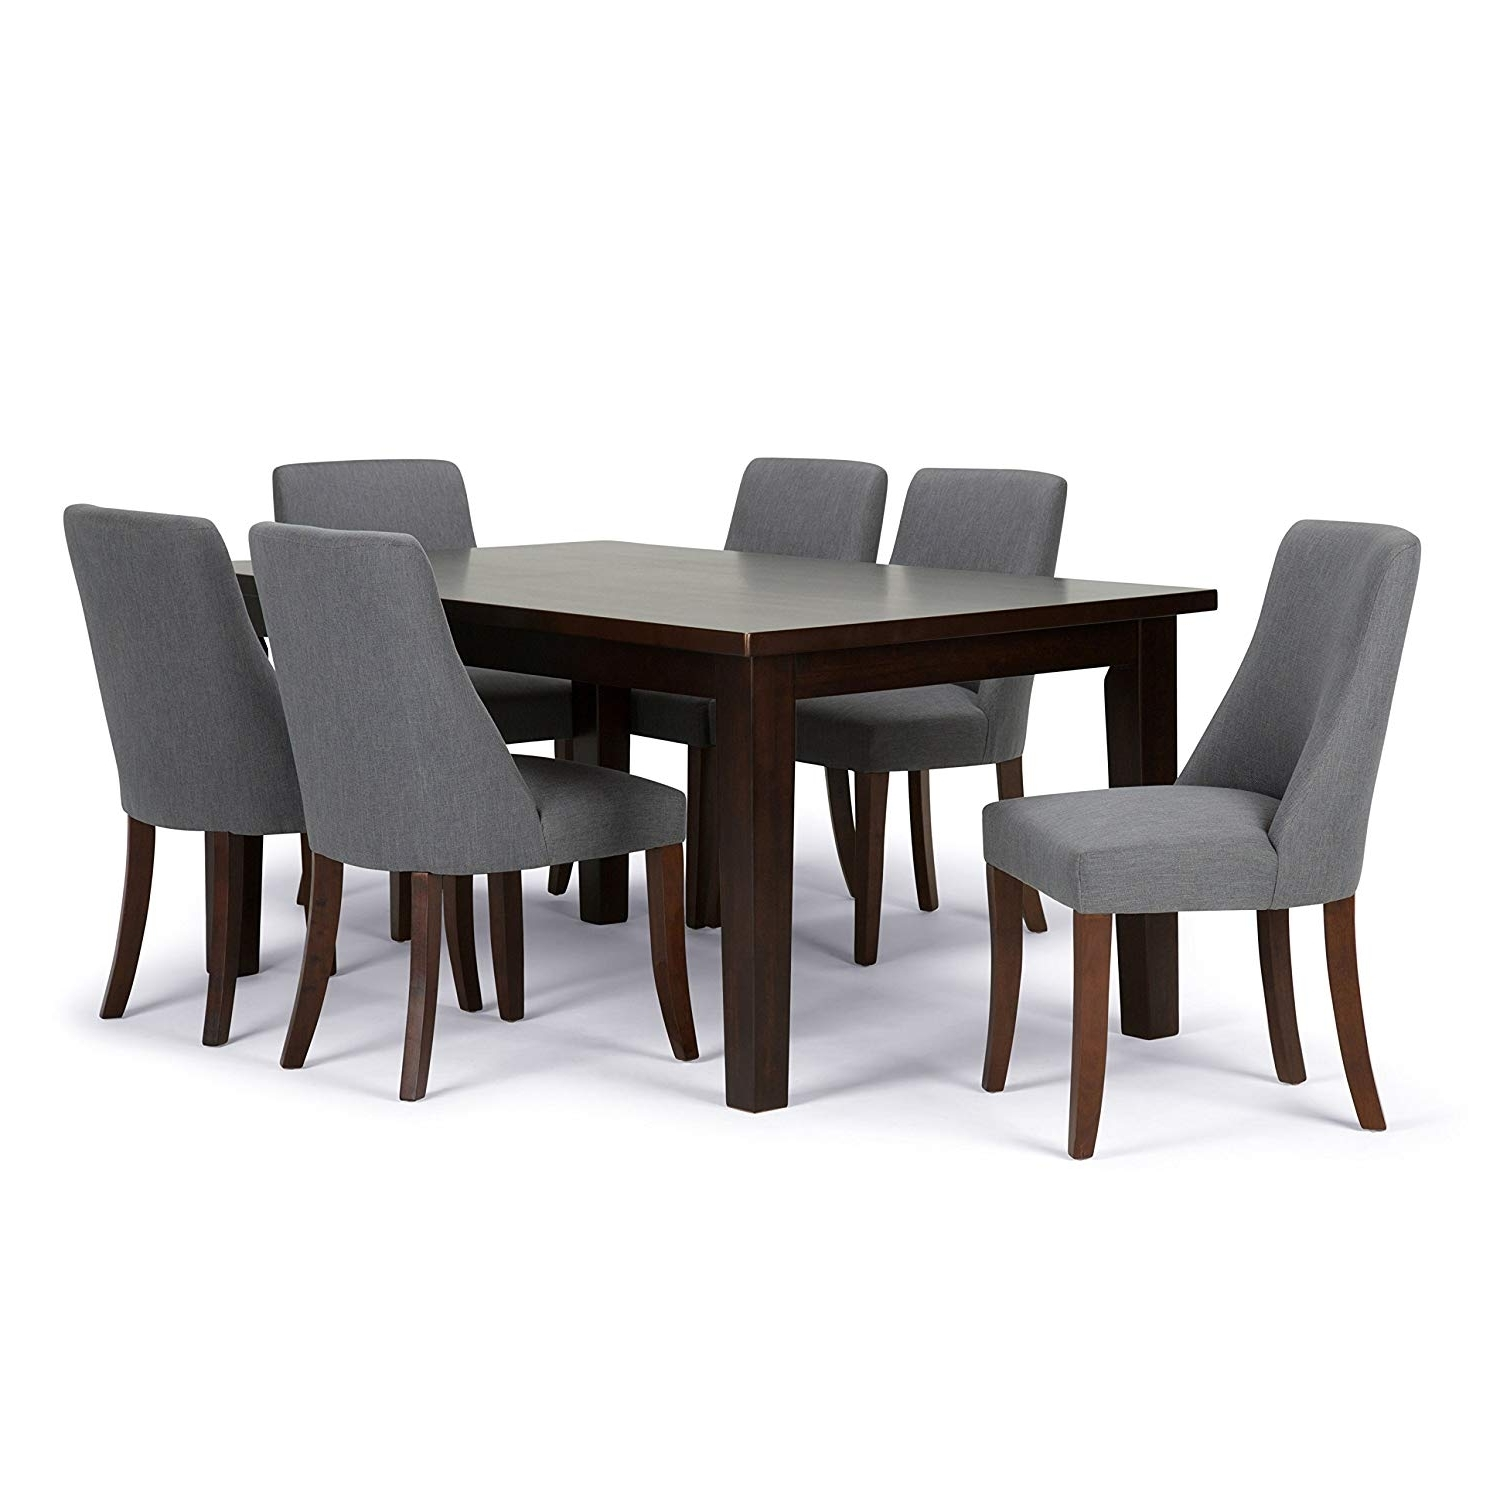 Walden Extension Dining Tables Pertaining To Most Recent Amazon: Simpli Home Walden 9 Piece Dining Set, Stone Grey (View 21 of 25)